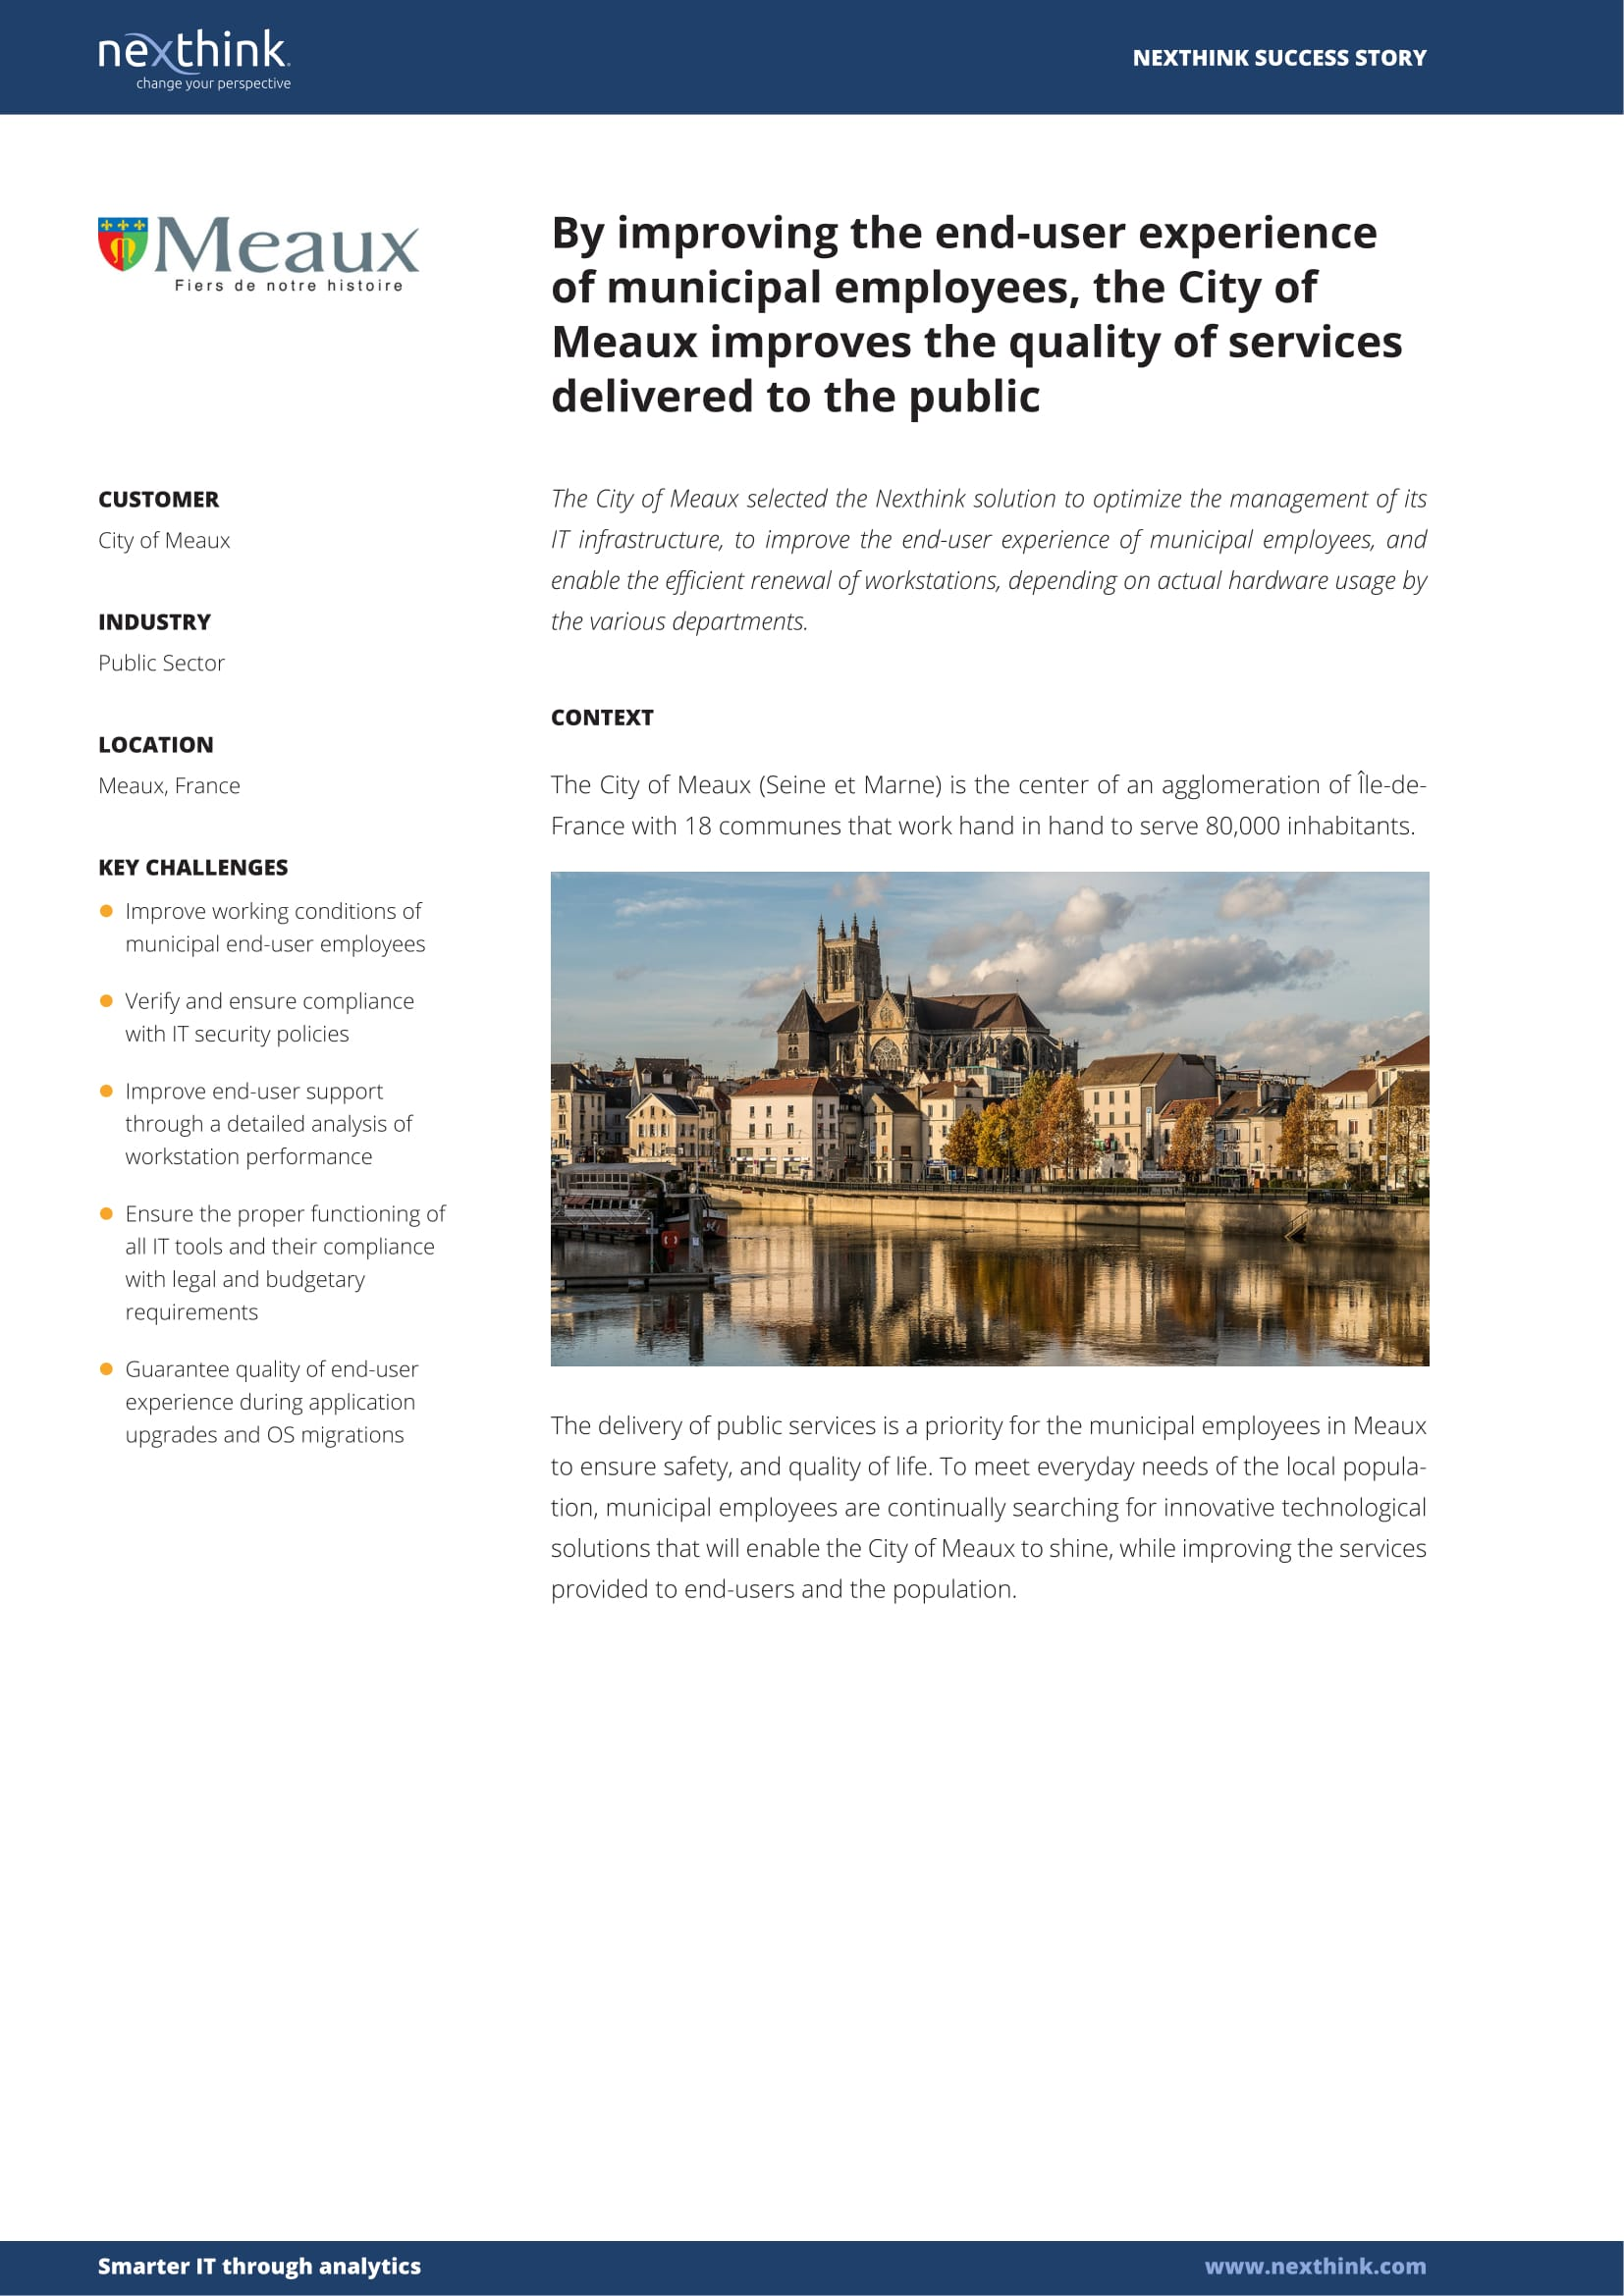 City of Meaux: By improving the end-user experience of municipal employees, the City of Meaux improves the quality of services delivered to the public